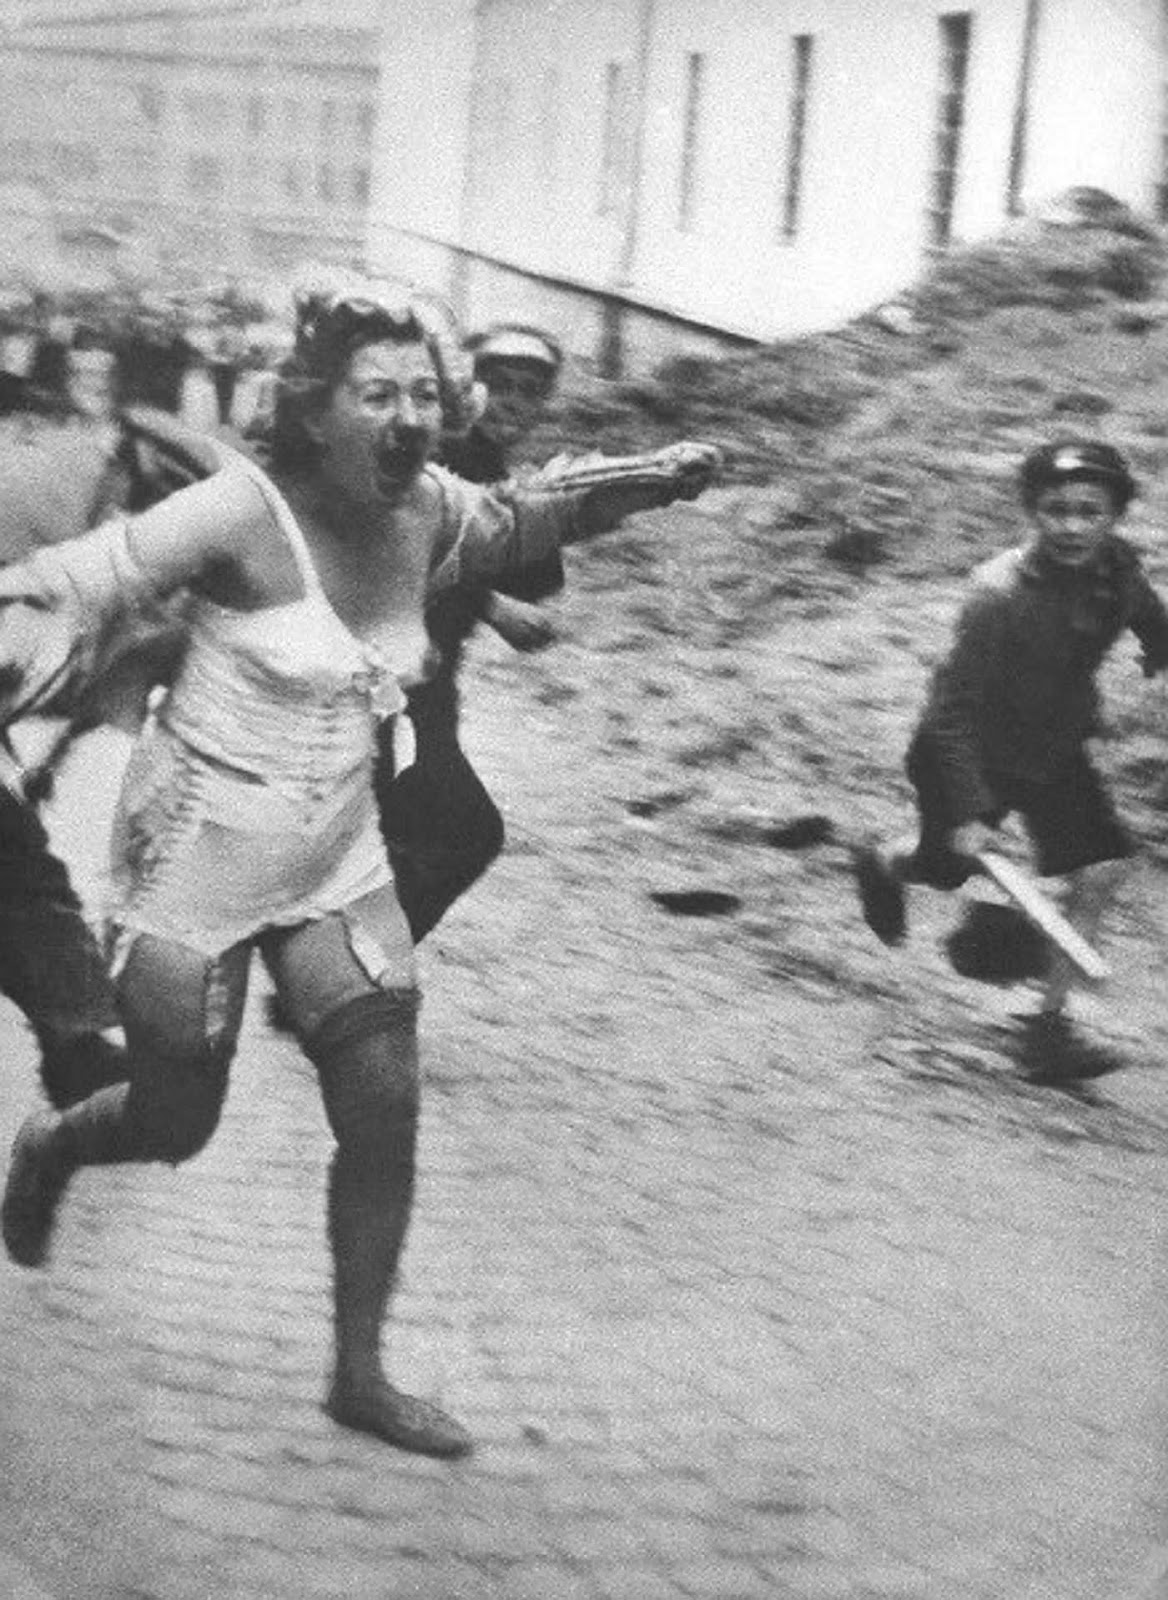 Woman chased by men and youth armed with clubs, Medova Street in Lviv, July 1941.